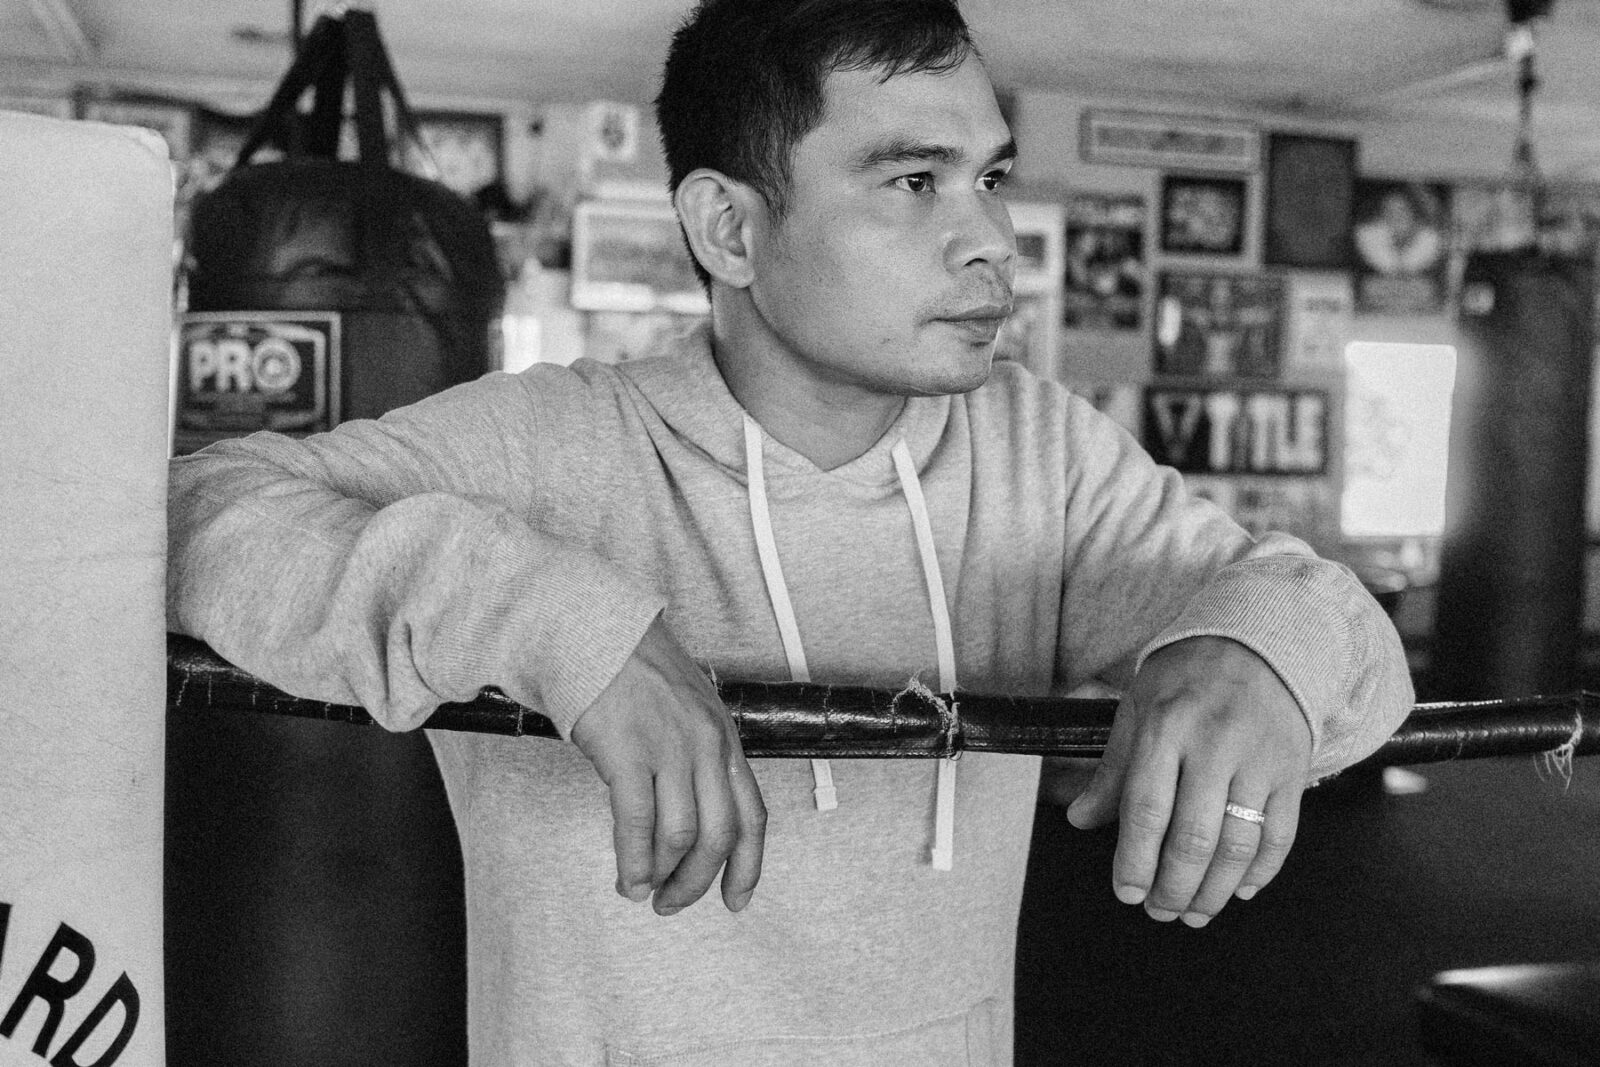 Marvin Somodio Rituals of Sport for Reigning Champ